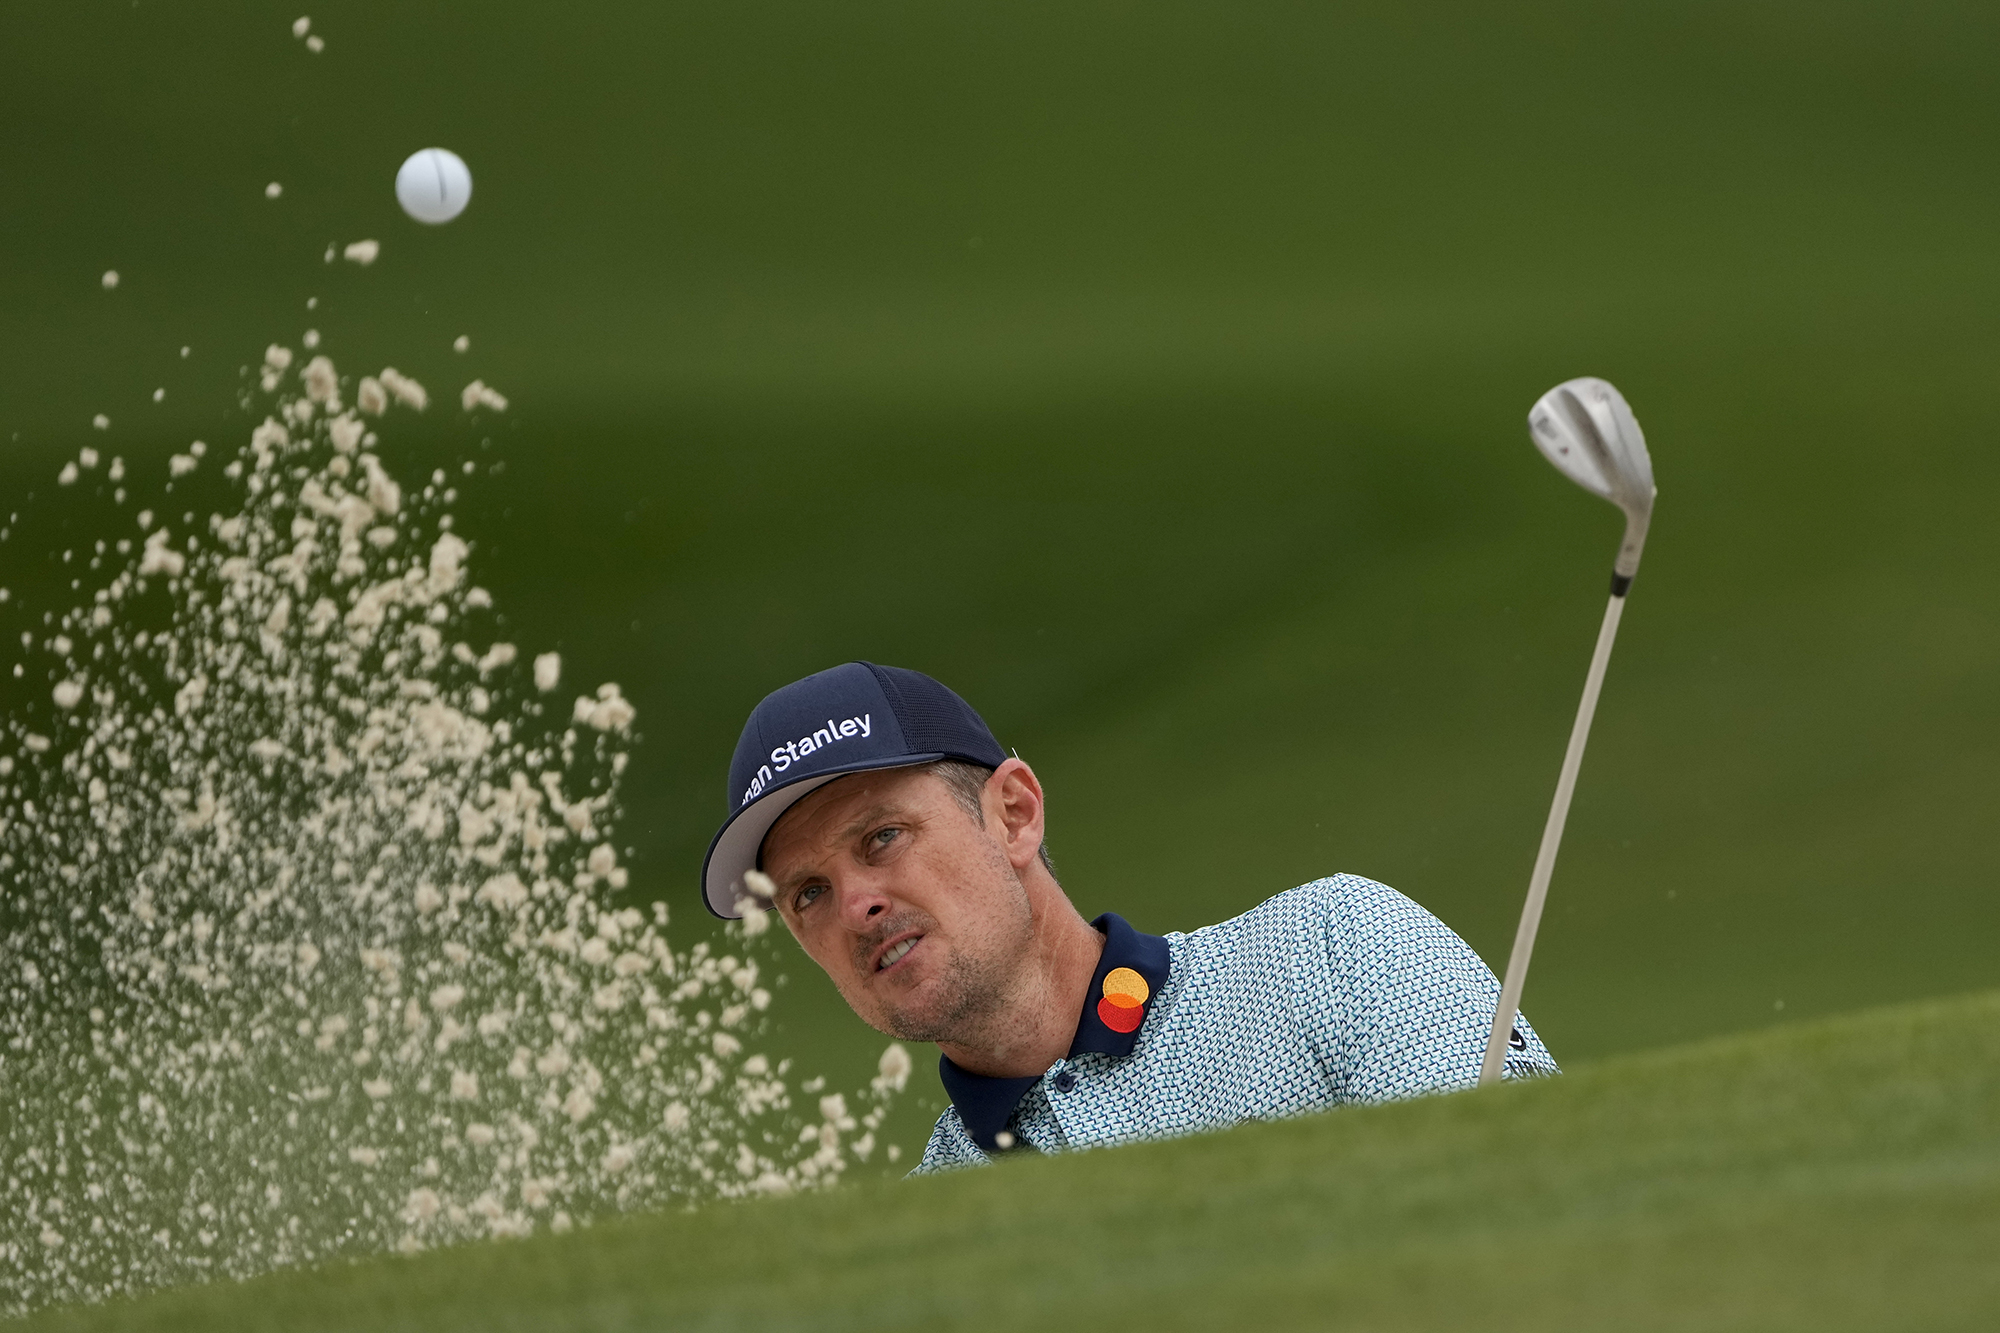 Big names make big moves at second day of Masters but still trail leader Justin Rose